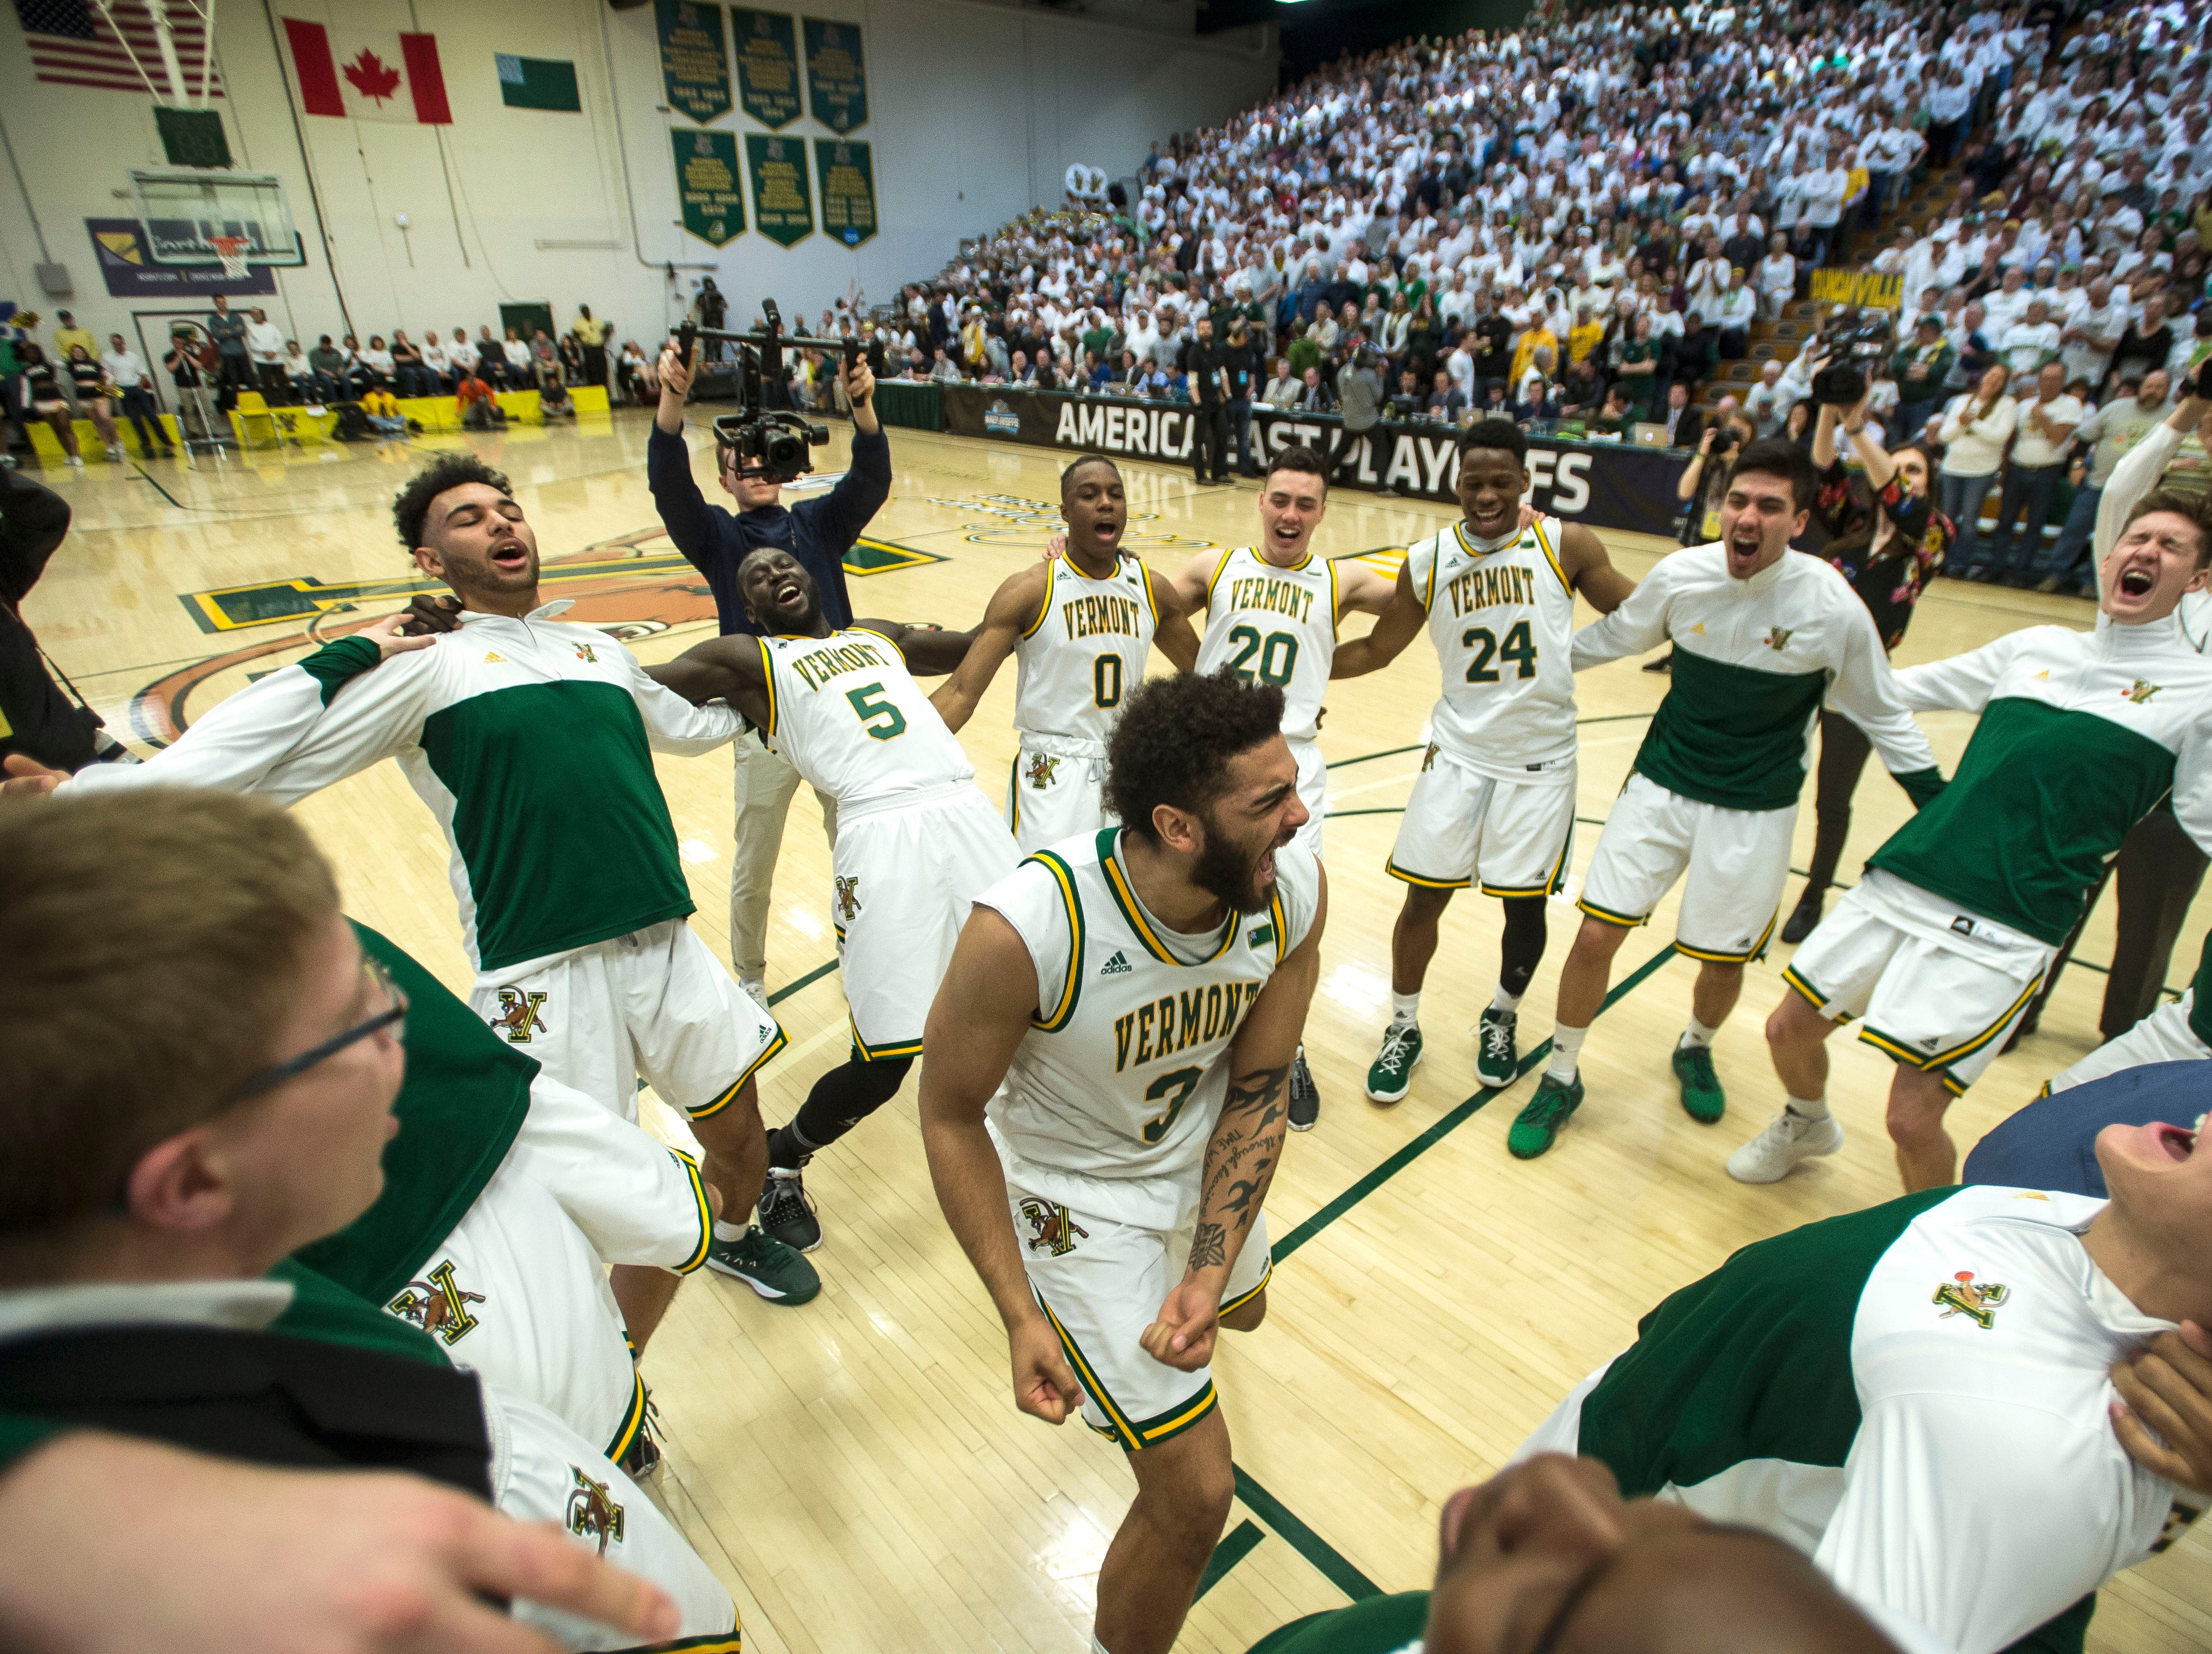 UVM Men's basketball #3 Anthony Lamb rallies with teammates before the start of the America East Championship in Burlington, Vt., on Saturday, March 16, 2019. UVM won, 66-49 and will head to the NCAA March Madness Tournament.